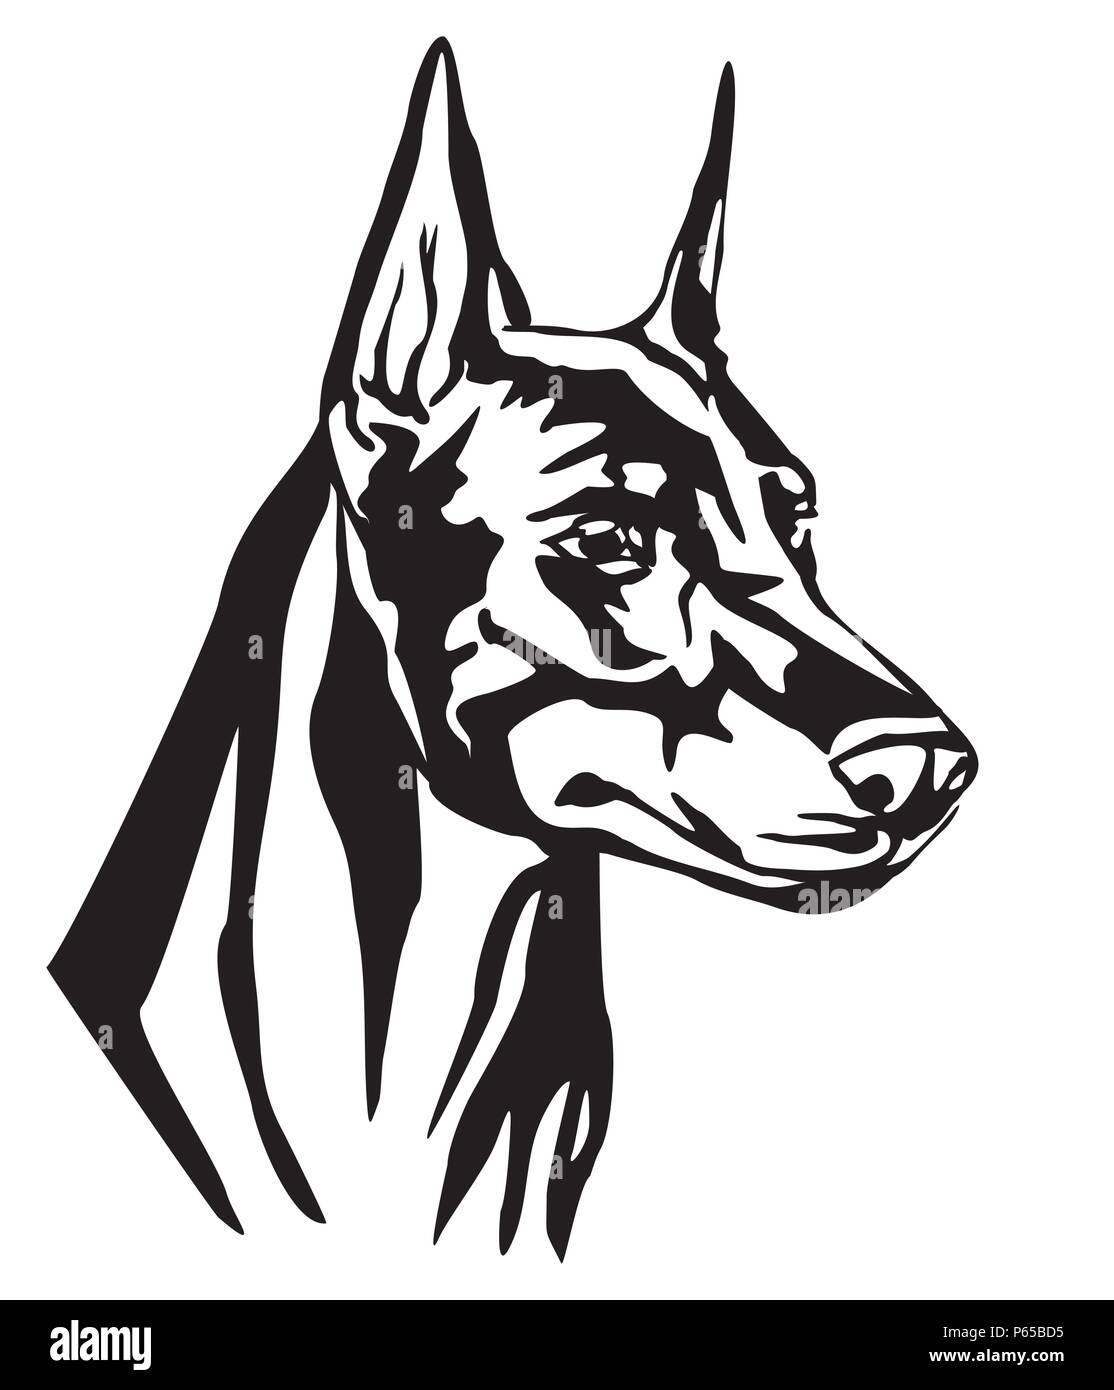 Decorative portrait of Dog Dobermann, vector isolated illustration in black color on white background. Image for design and tattoo. - Stock Image